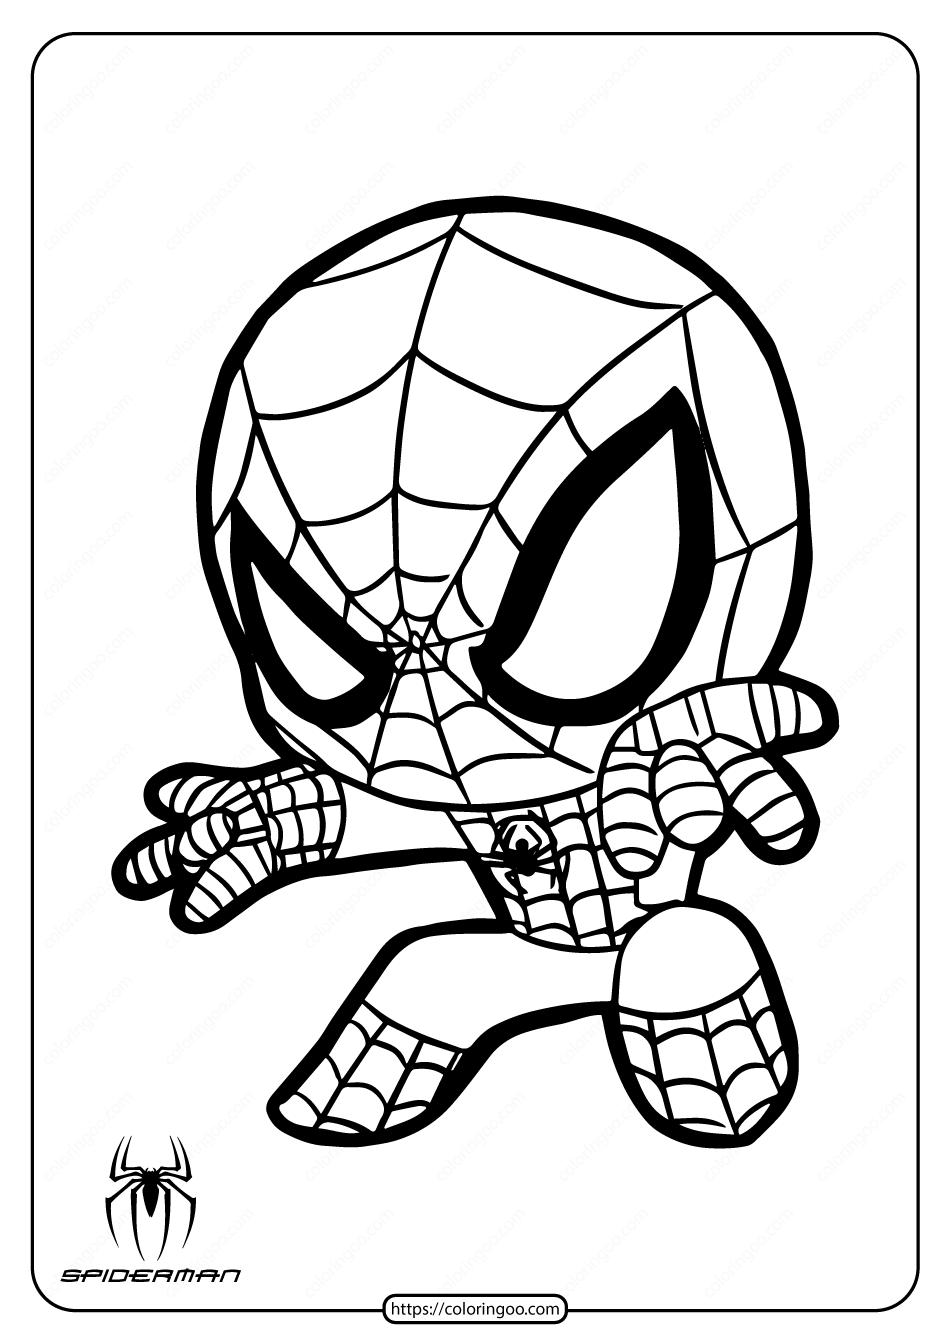 coloring sheet spiderman coloring pages coloring pages spiderman free printable coloring pages coloring pages sheet spiderman coloring